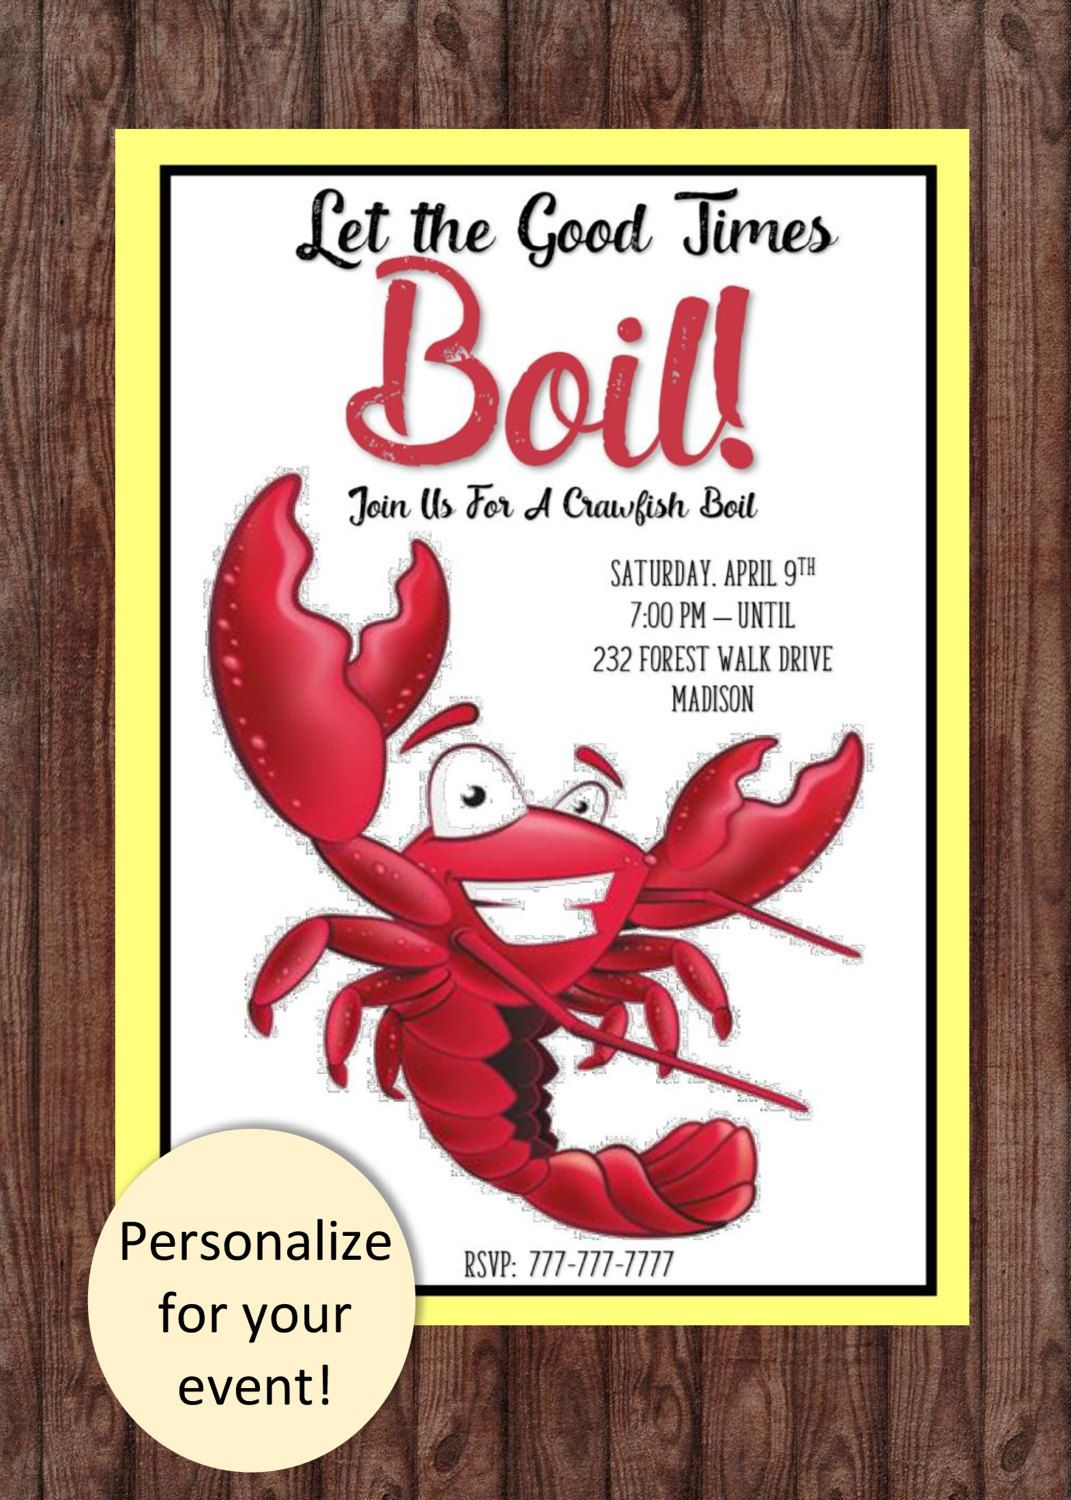 CRAWFISH BY THE POUND BANNER Sign NEW Larger Size Best Quality for the $$$